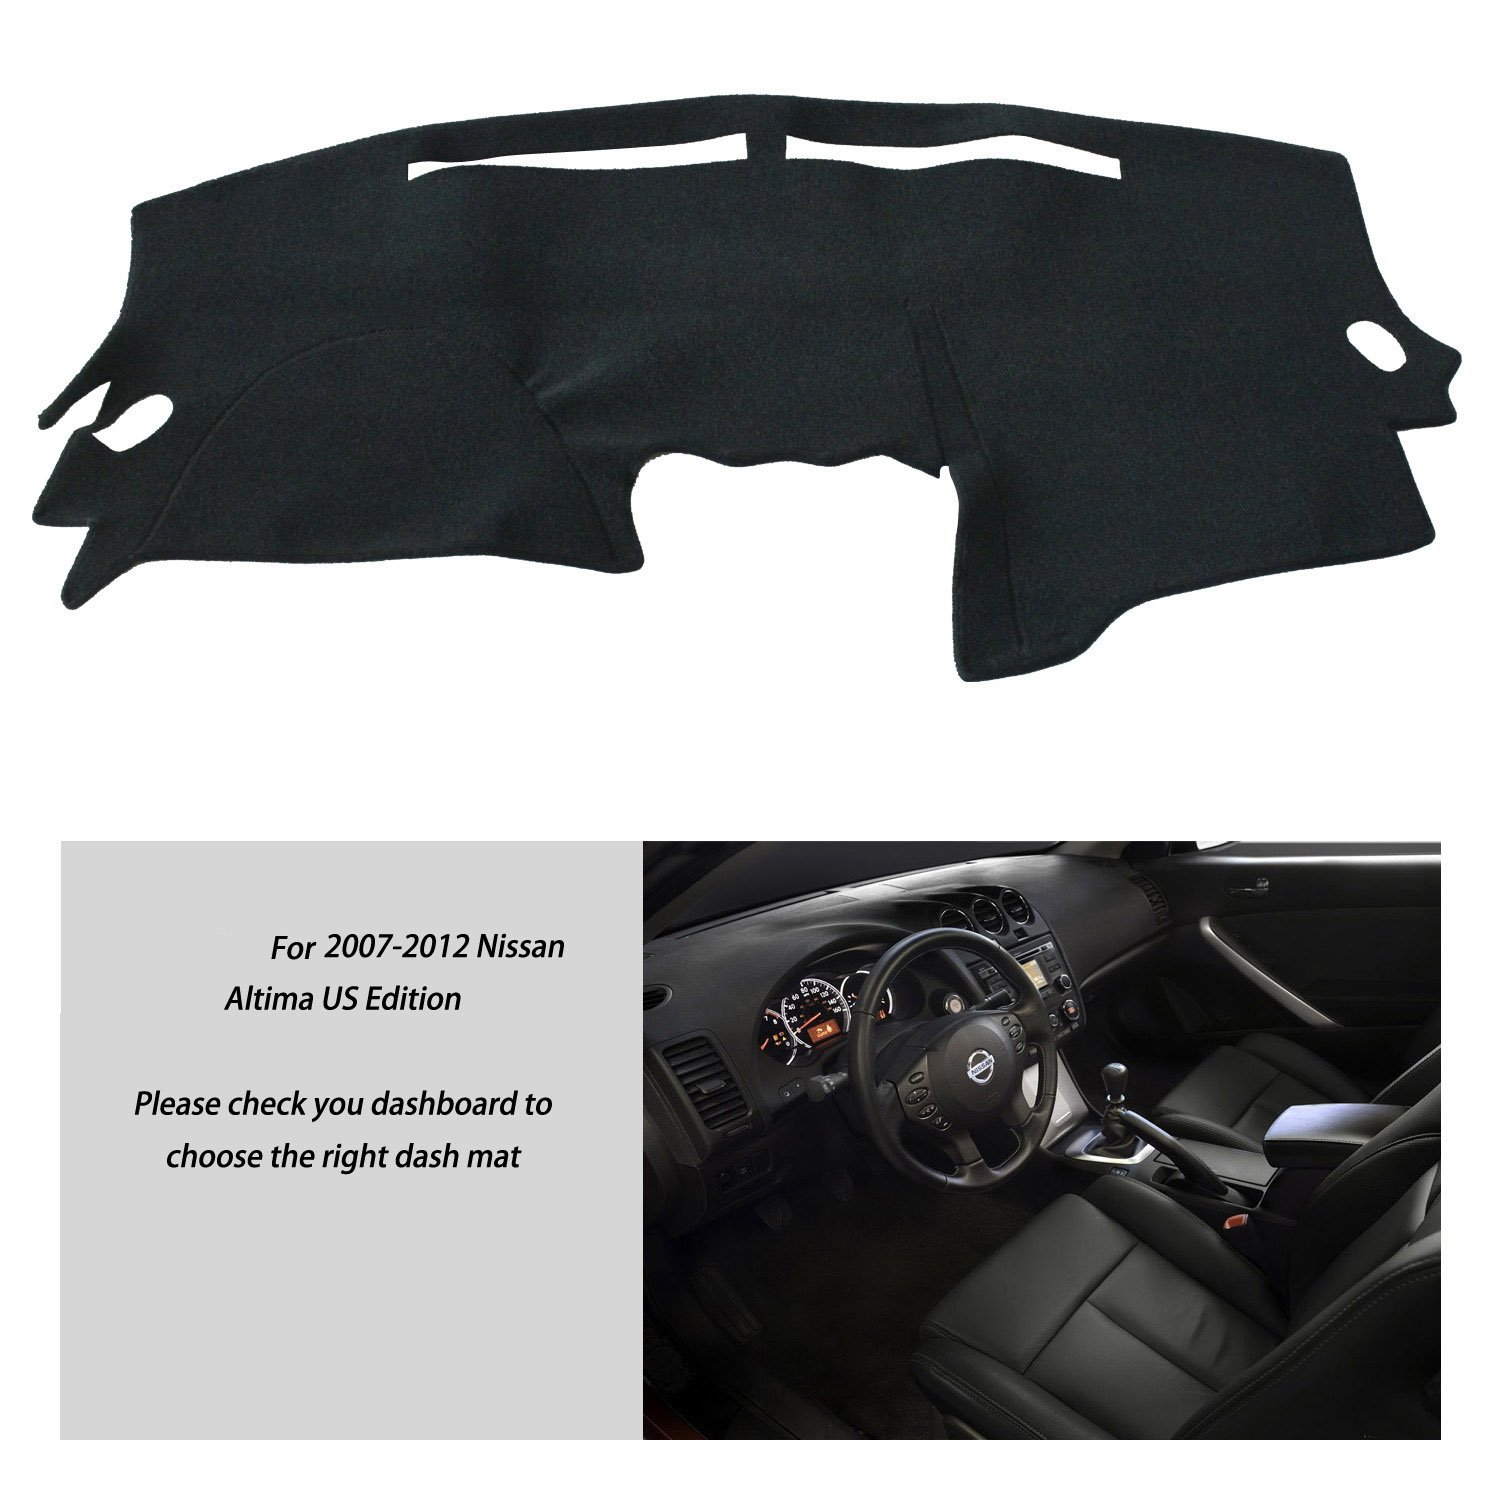 Nissan Altima 2007-2012, Black FLY5D Nissan Dashmat Dashboard Mat Sun Cover Car Interior Dash Cover For Nissan Altima 2007-2012